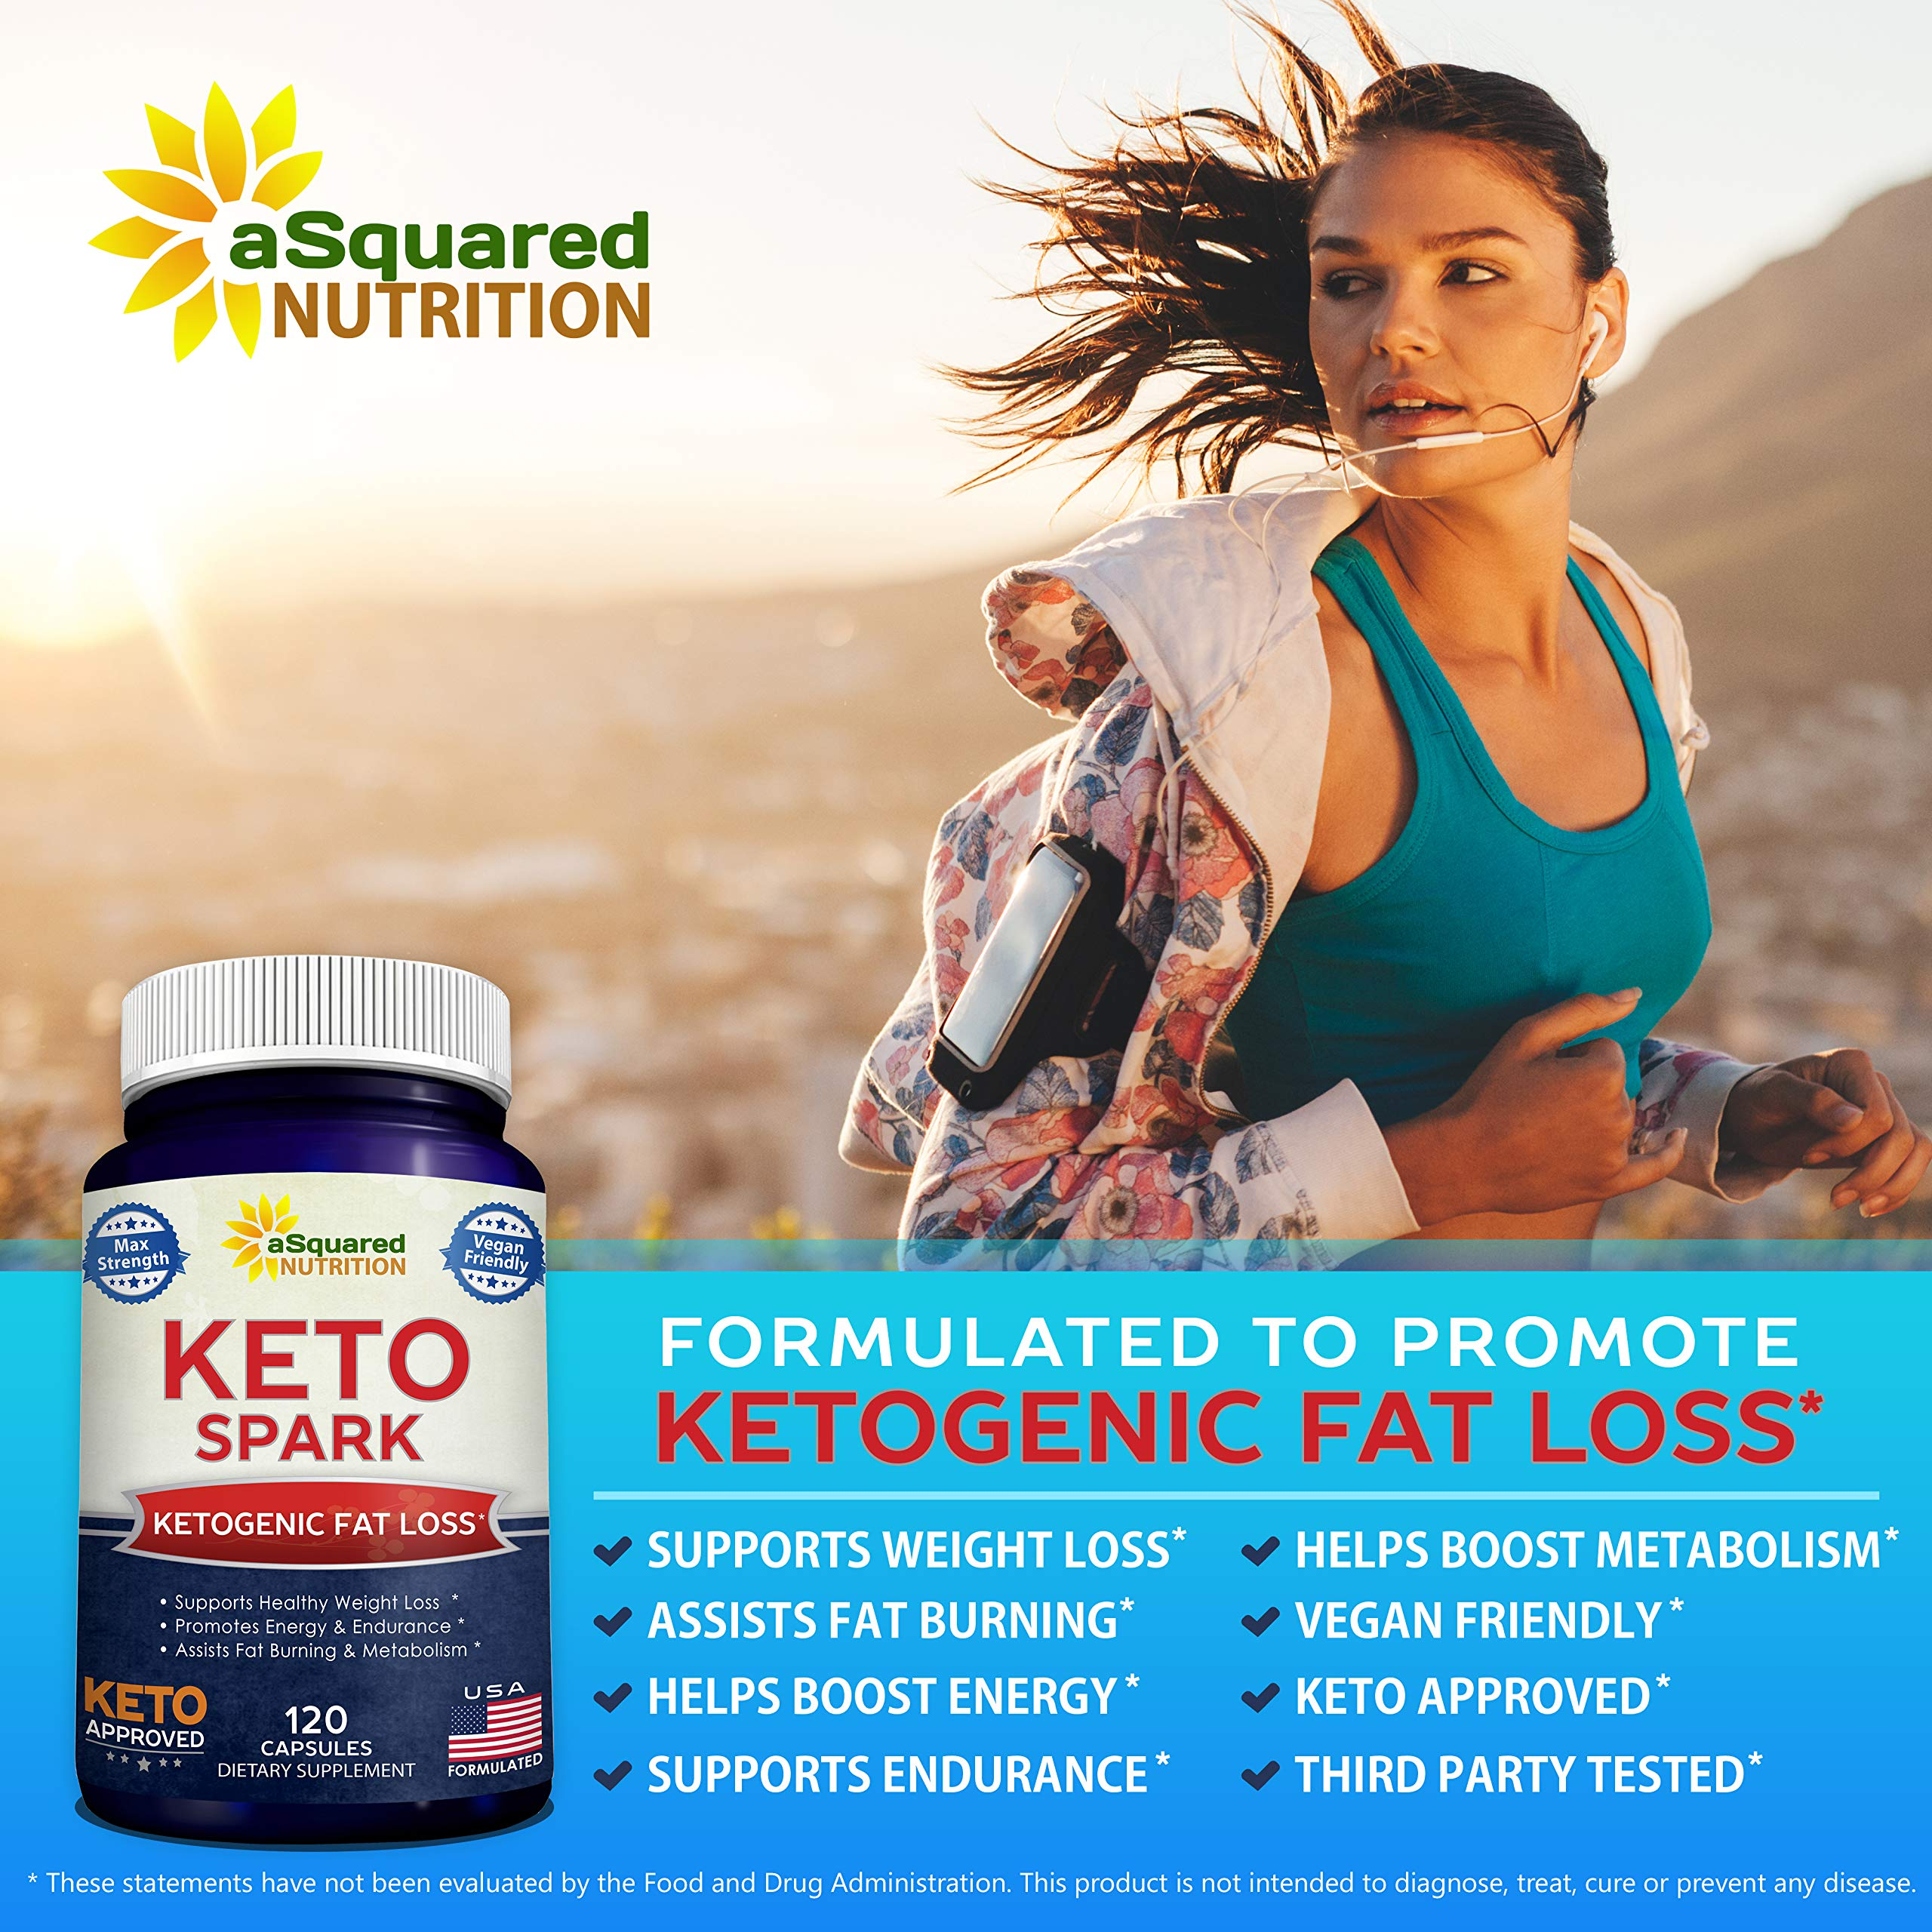 Keto Spark - Supplement for Weight Loss (120 Capsules) - Pills Approved for The Ketogenic & Paleo Diet - Helps Stay in Ketosis, Increase Energy & Focus - Caffeine & Ketones for Women & Men by aSquared Nutrition (Image #5)